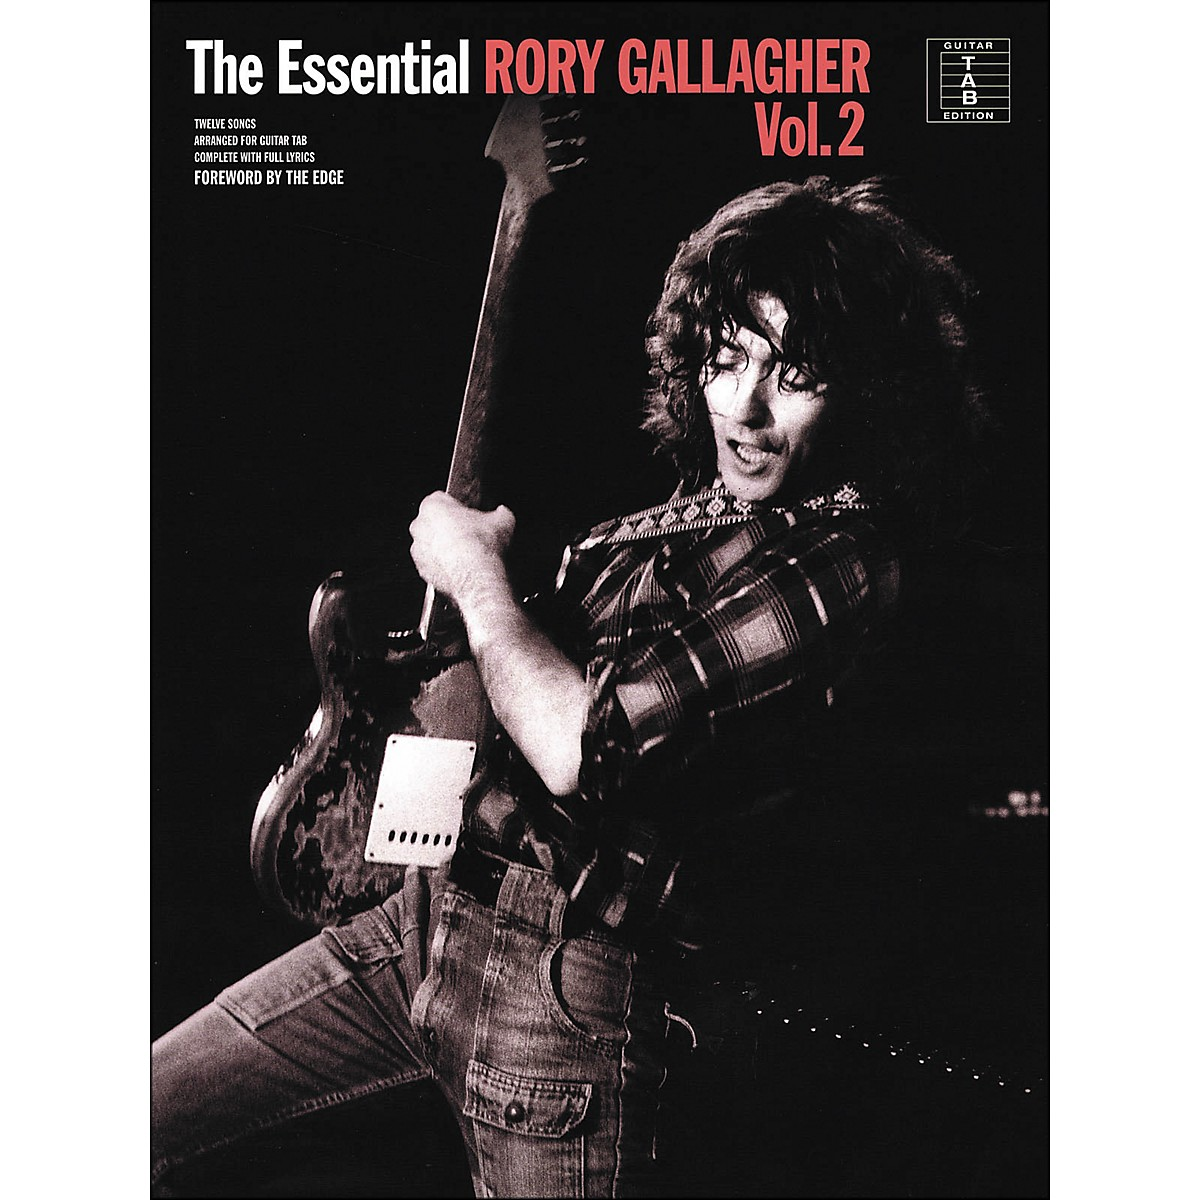 I Fall Apart Music Id: Music Sales The Essential Rory Gallagher Vol. 2 Tab Book